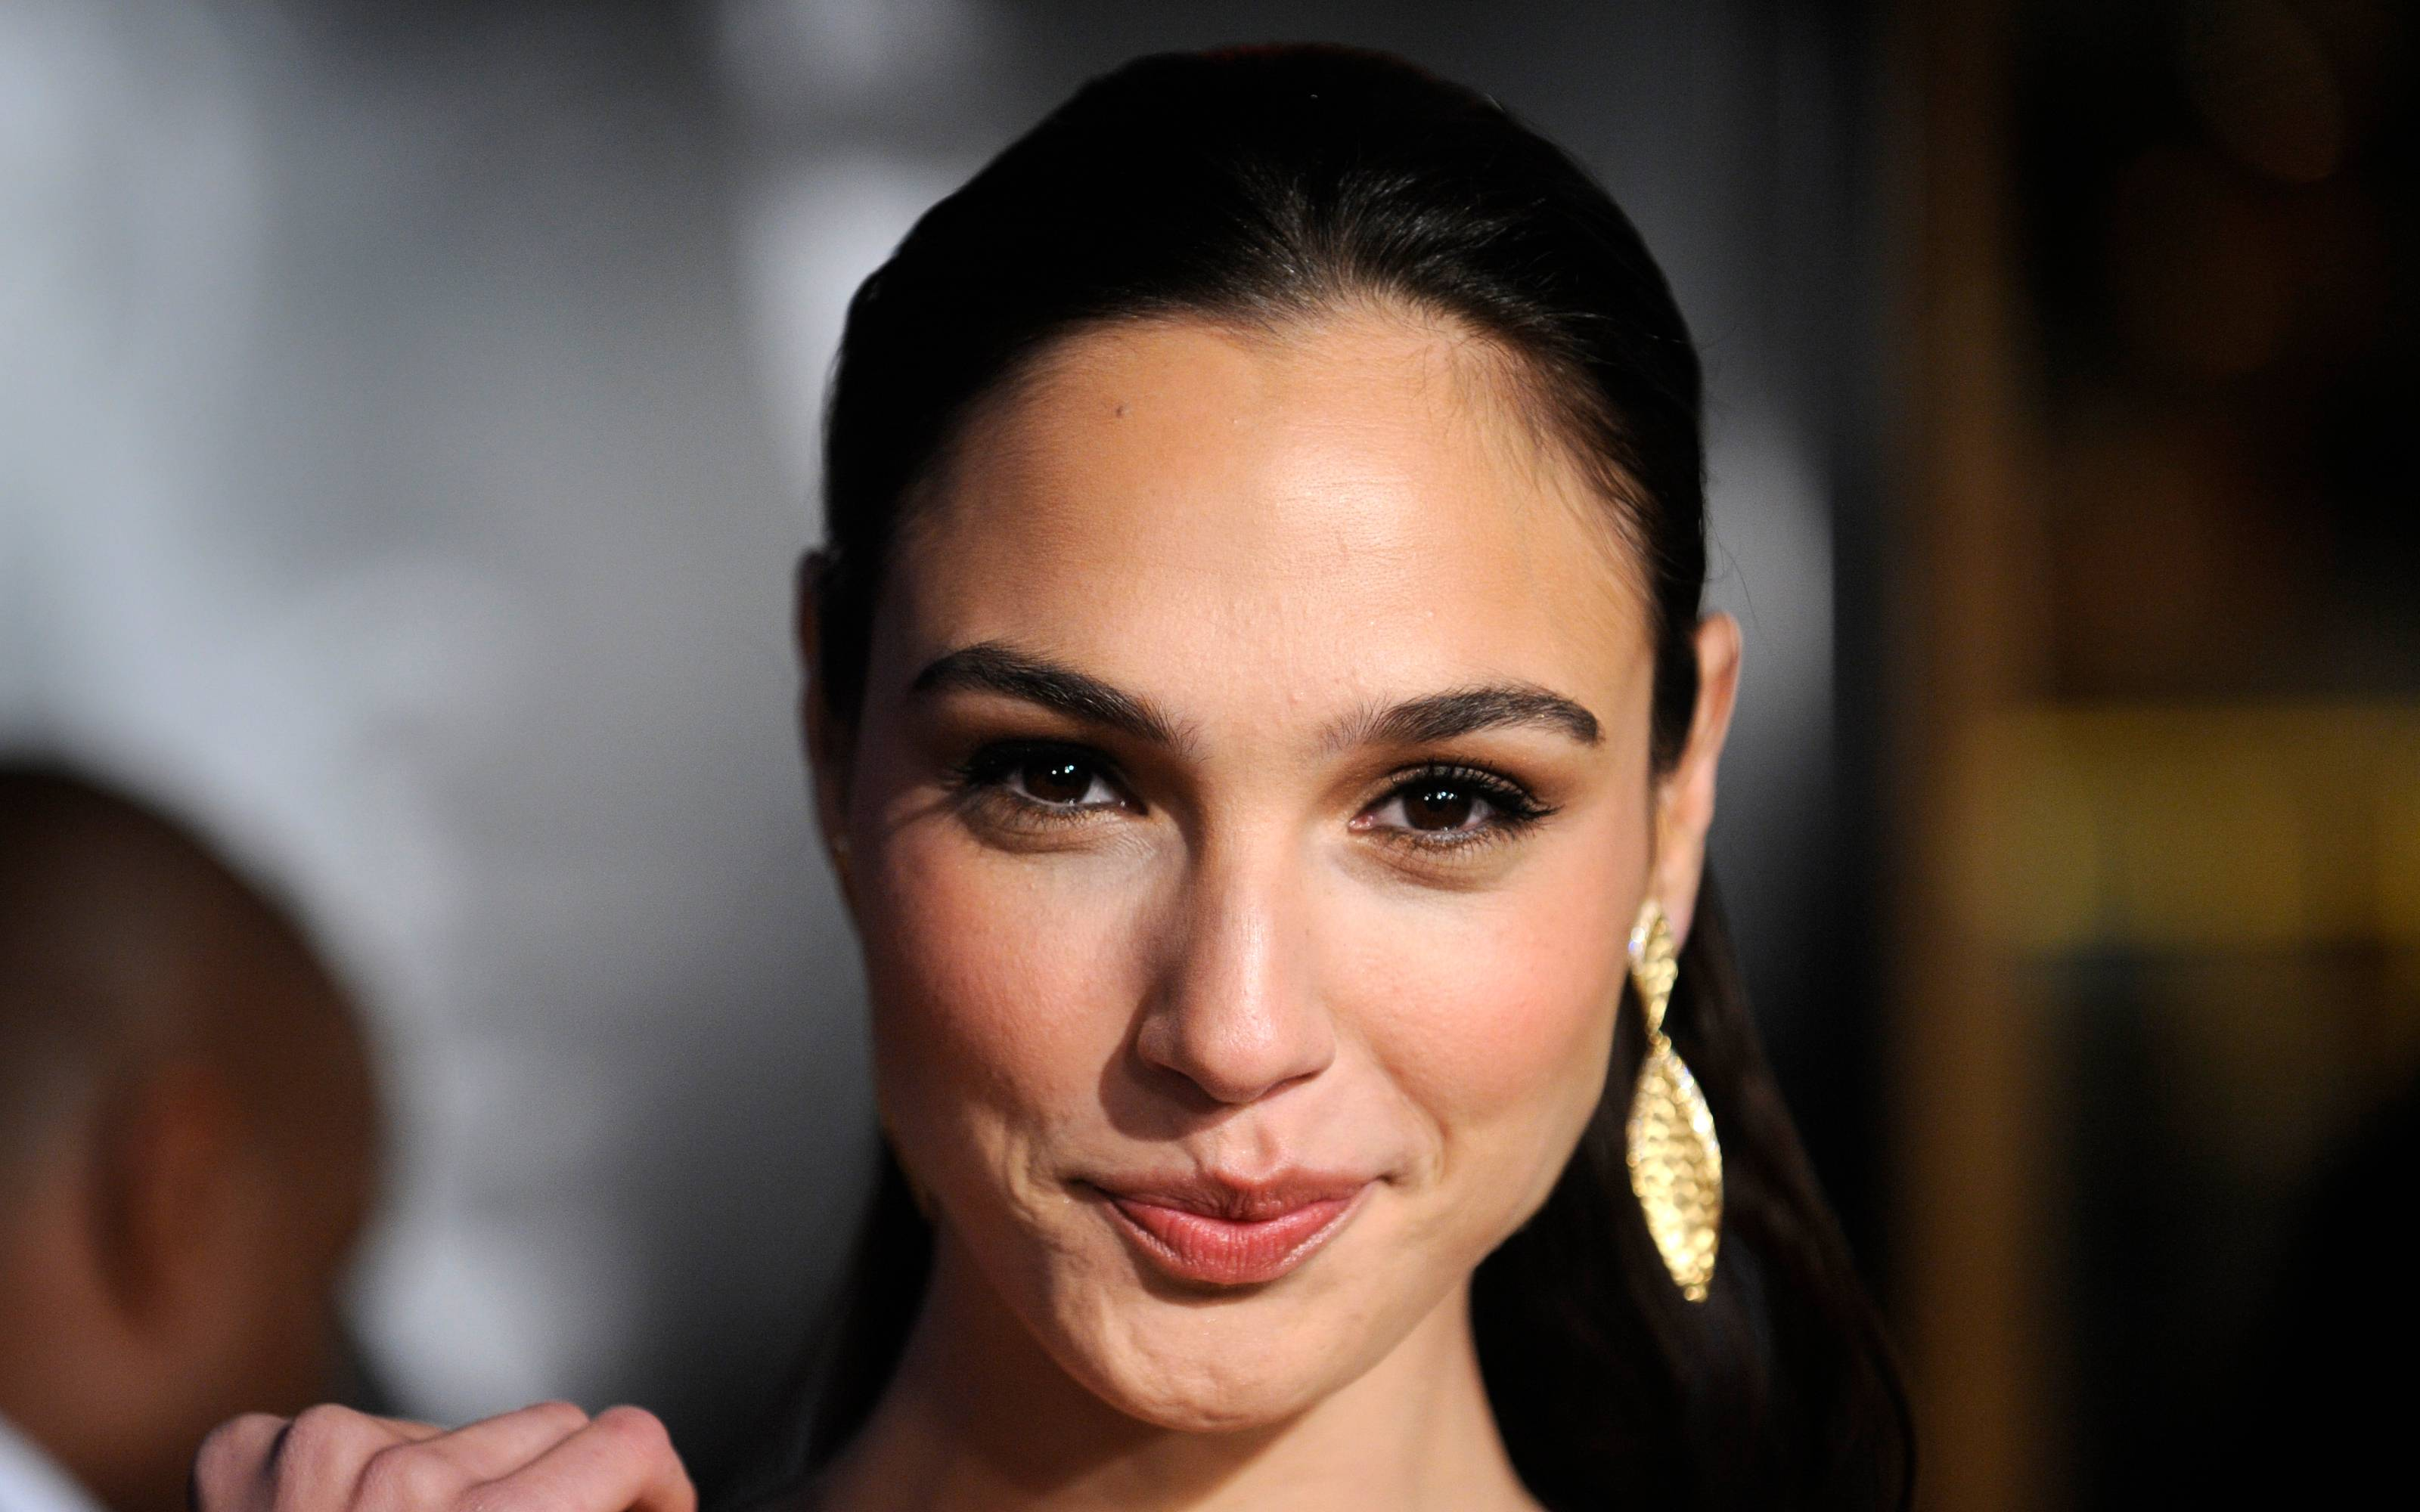 Gal Gadot Wallpaper By Ethne Couves On Goldwallpapers Com